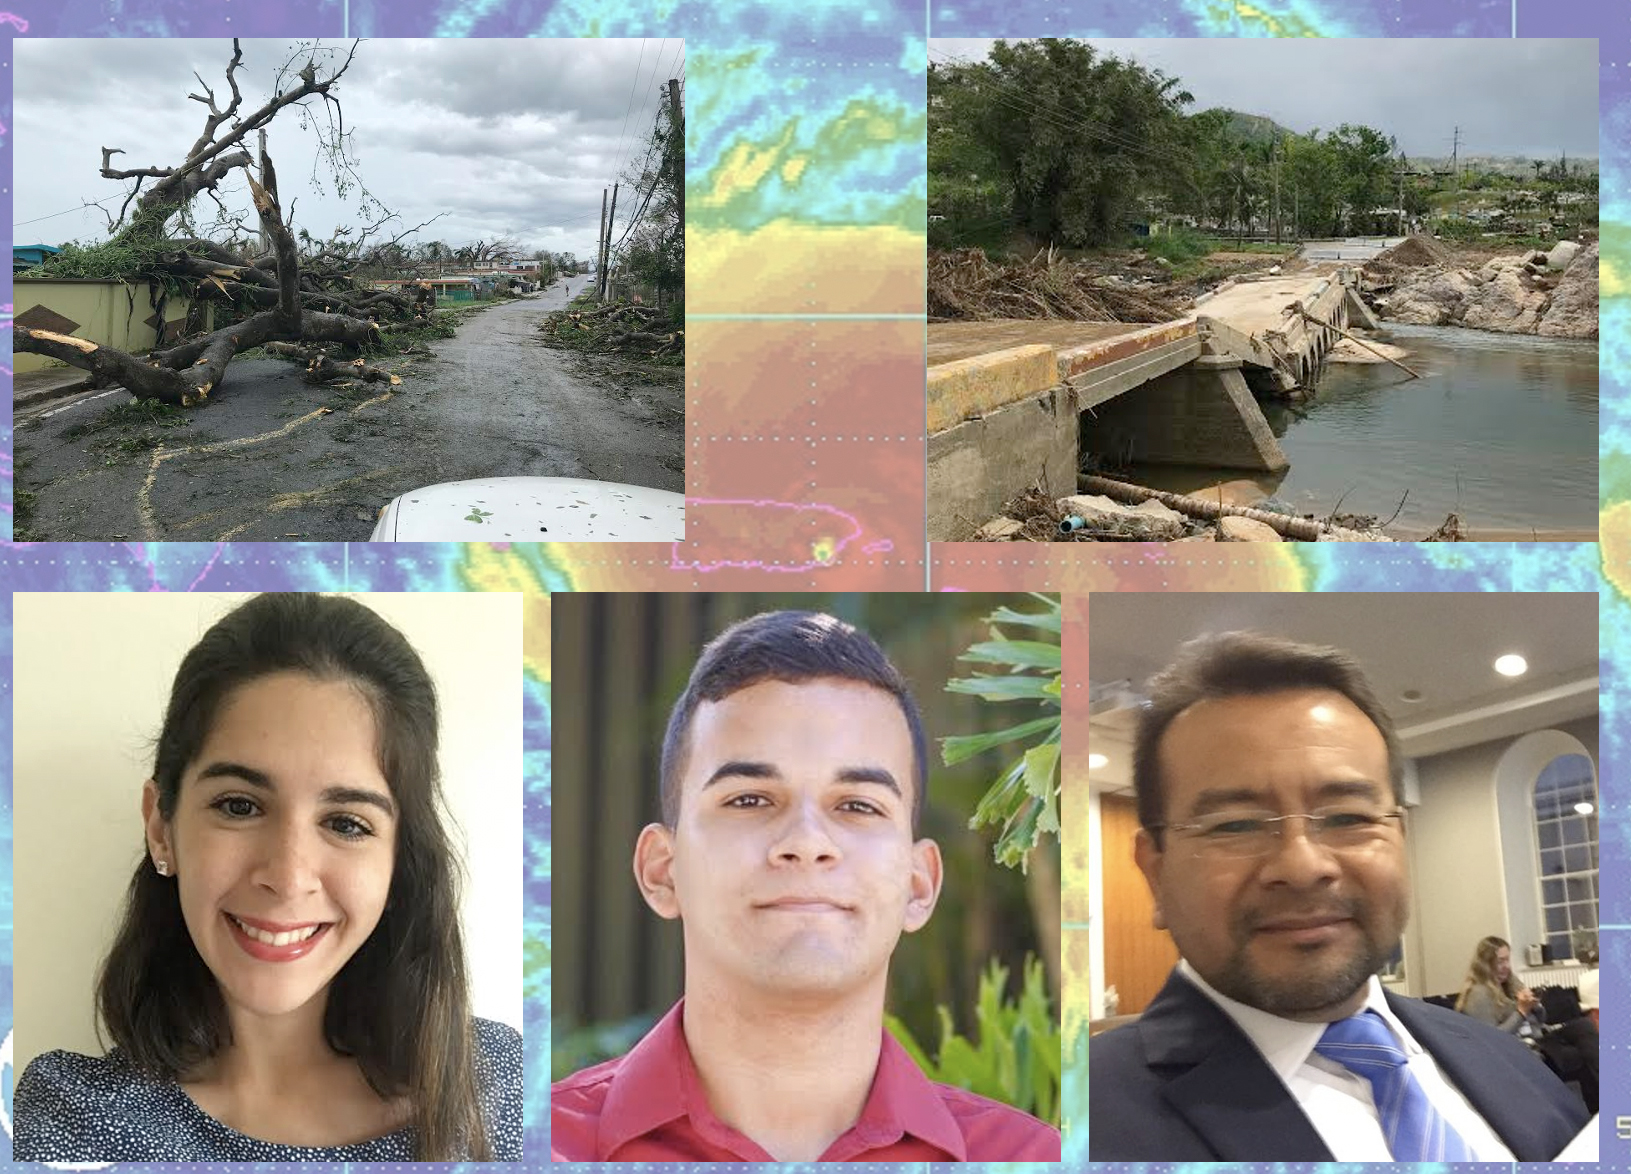 The UPRM team, which includes (left to right) students from Verónica Díaz-Pacheco, Frederick González-Román and project lead Dr. Mauricio Cabrera-Ríos. Photo illustration by Frederick González-Román.